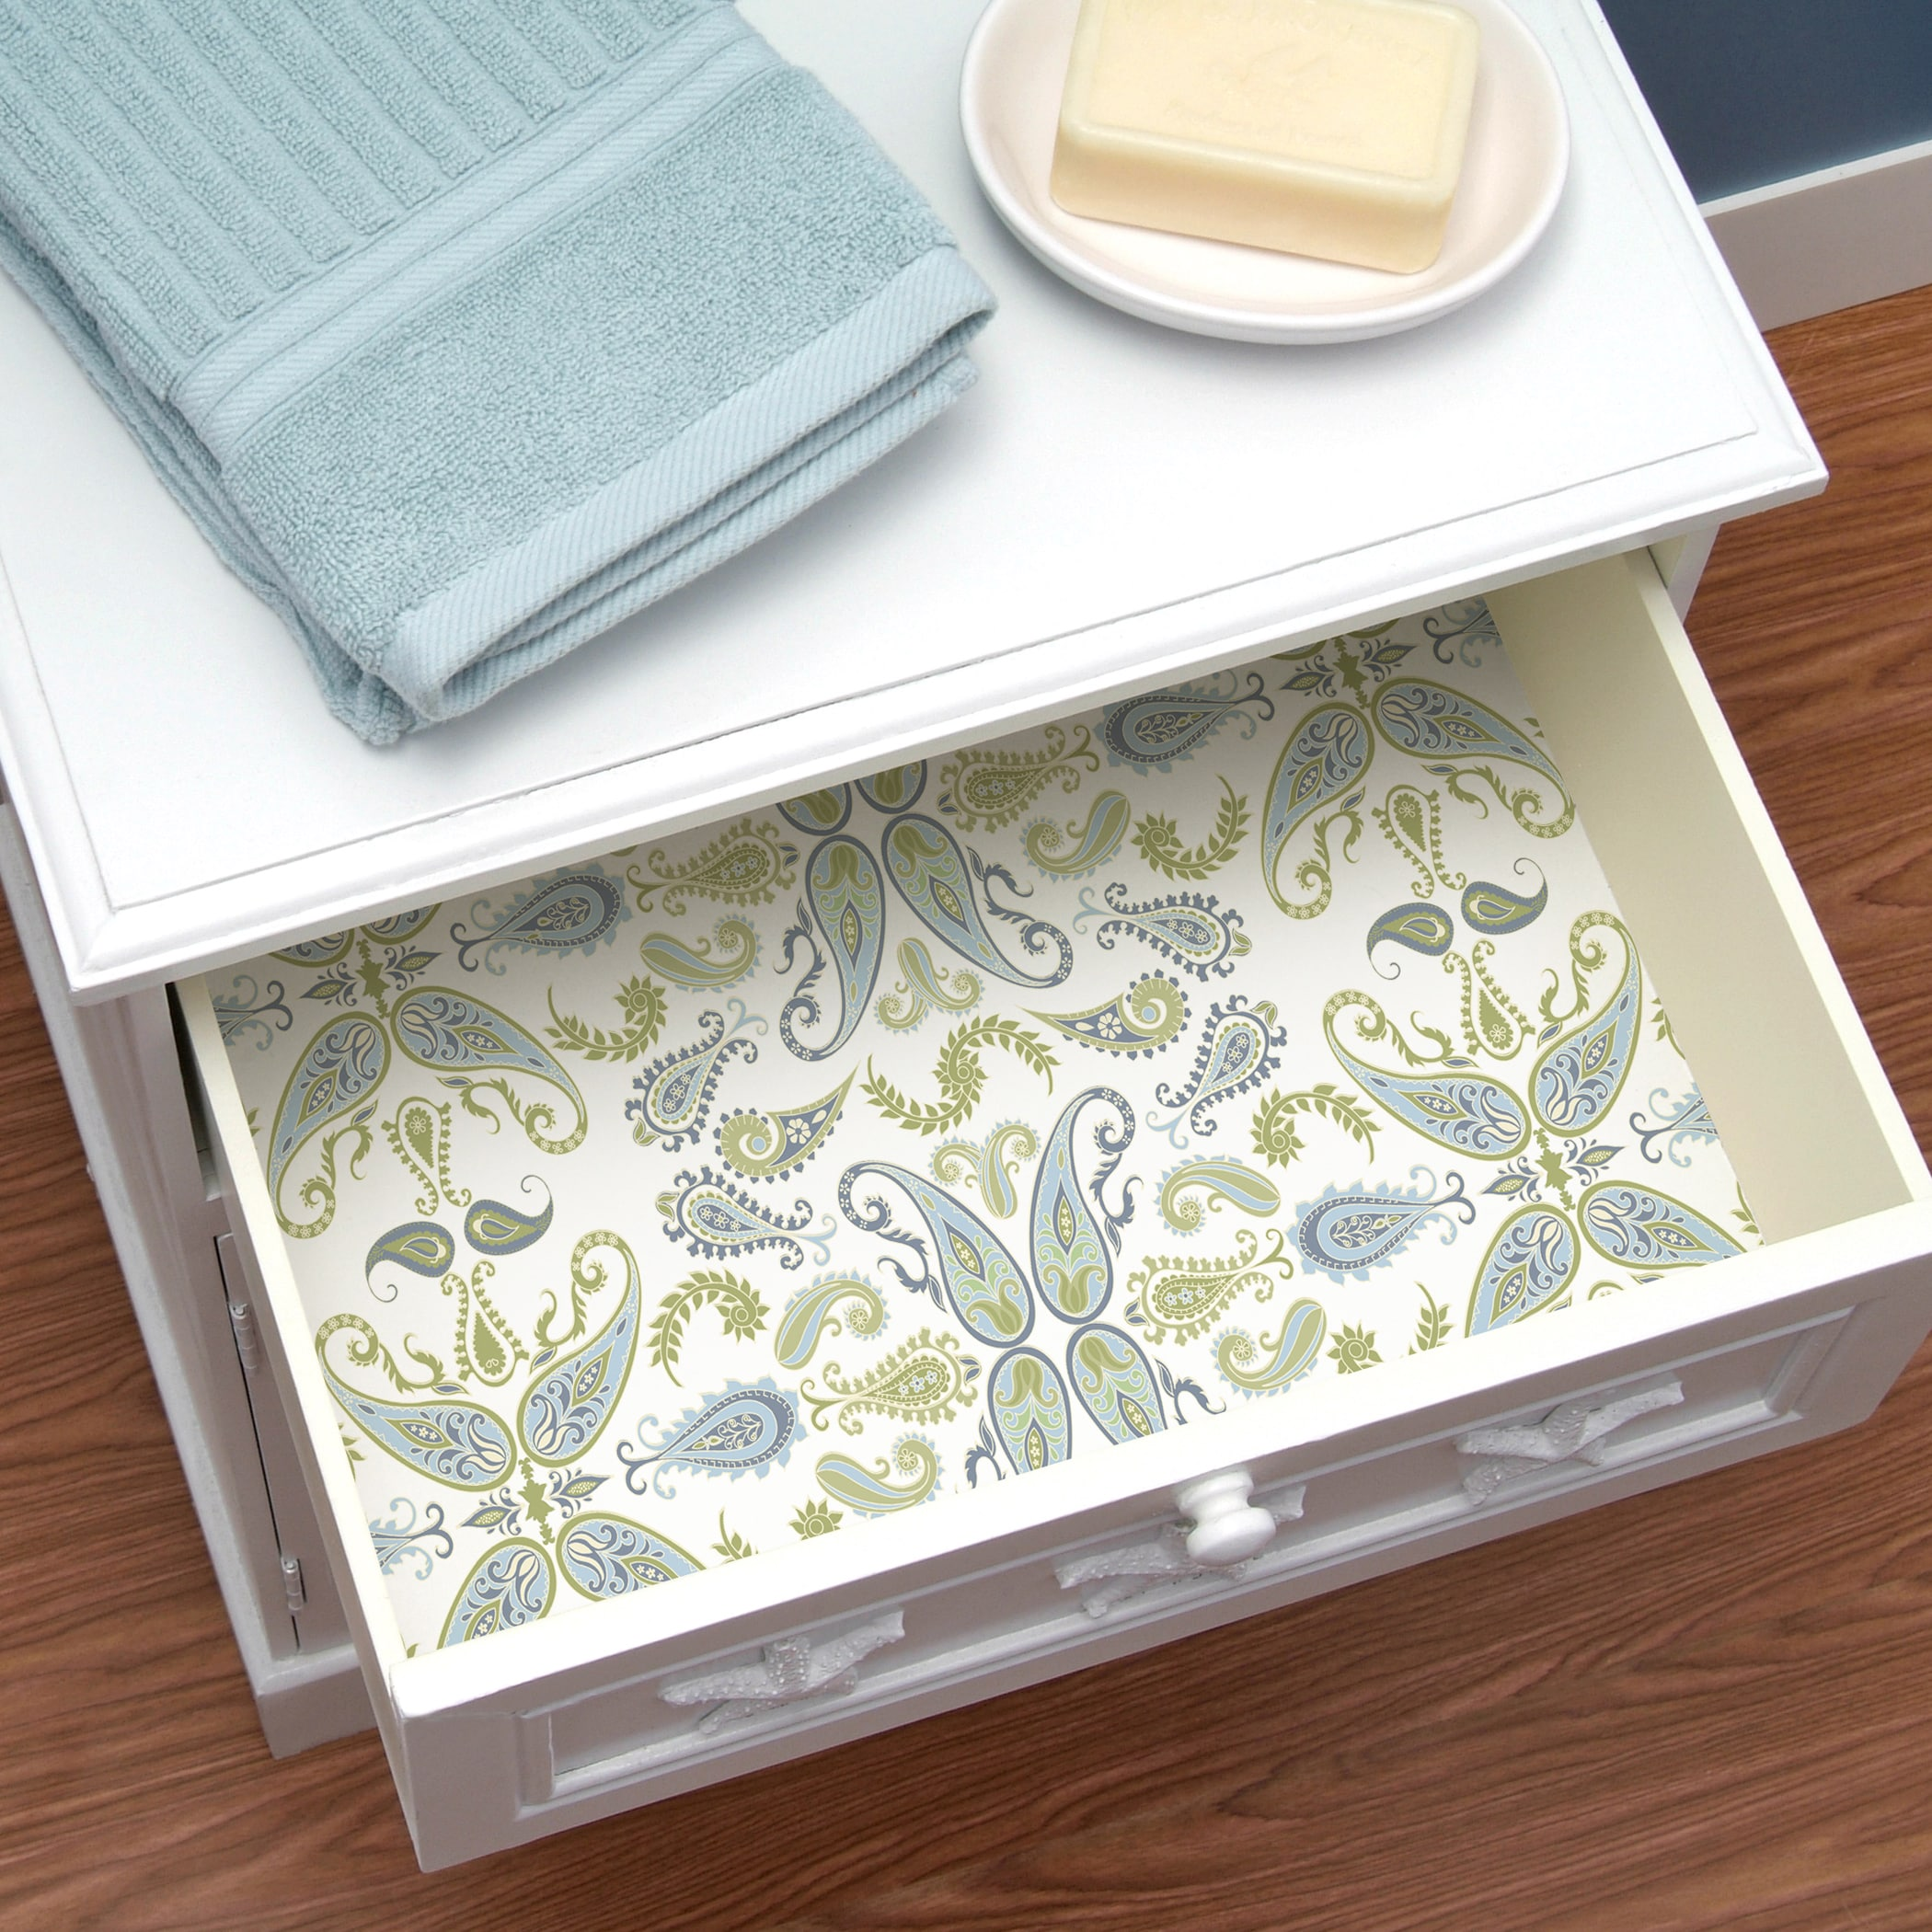 liner multiple inexpensive drawers shelf woodworking with nonsticky all shelves and handyman installing benefits cabinets view is quick project drawerliner clear a to liners plastic how family drawer line